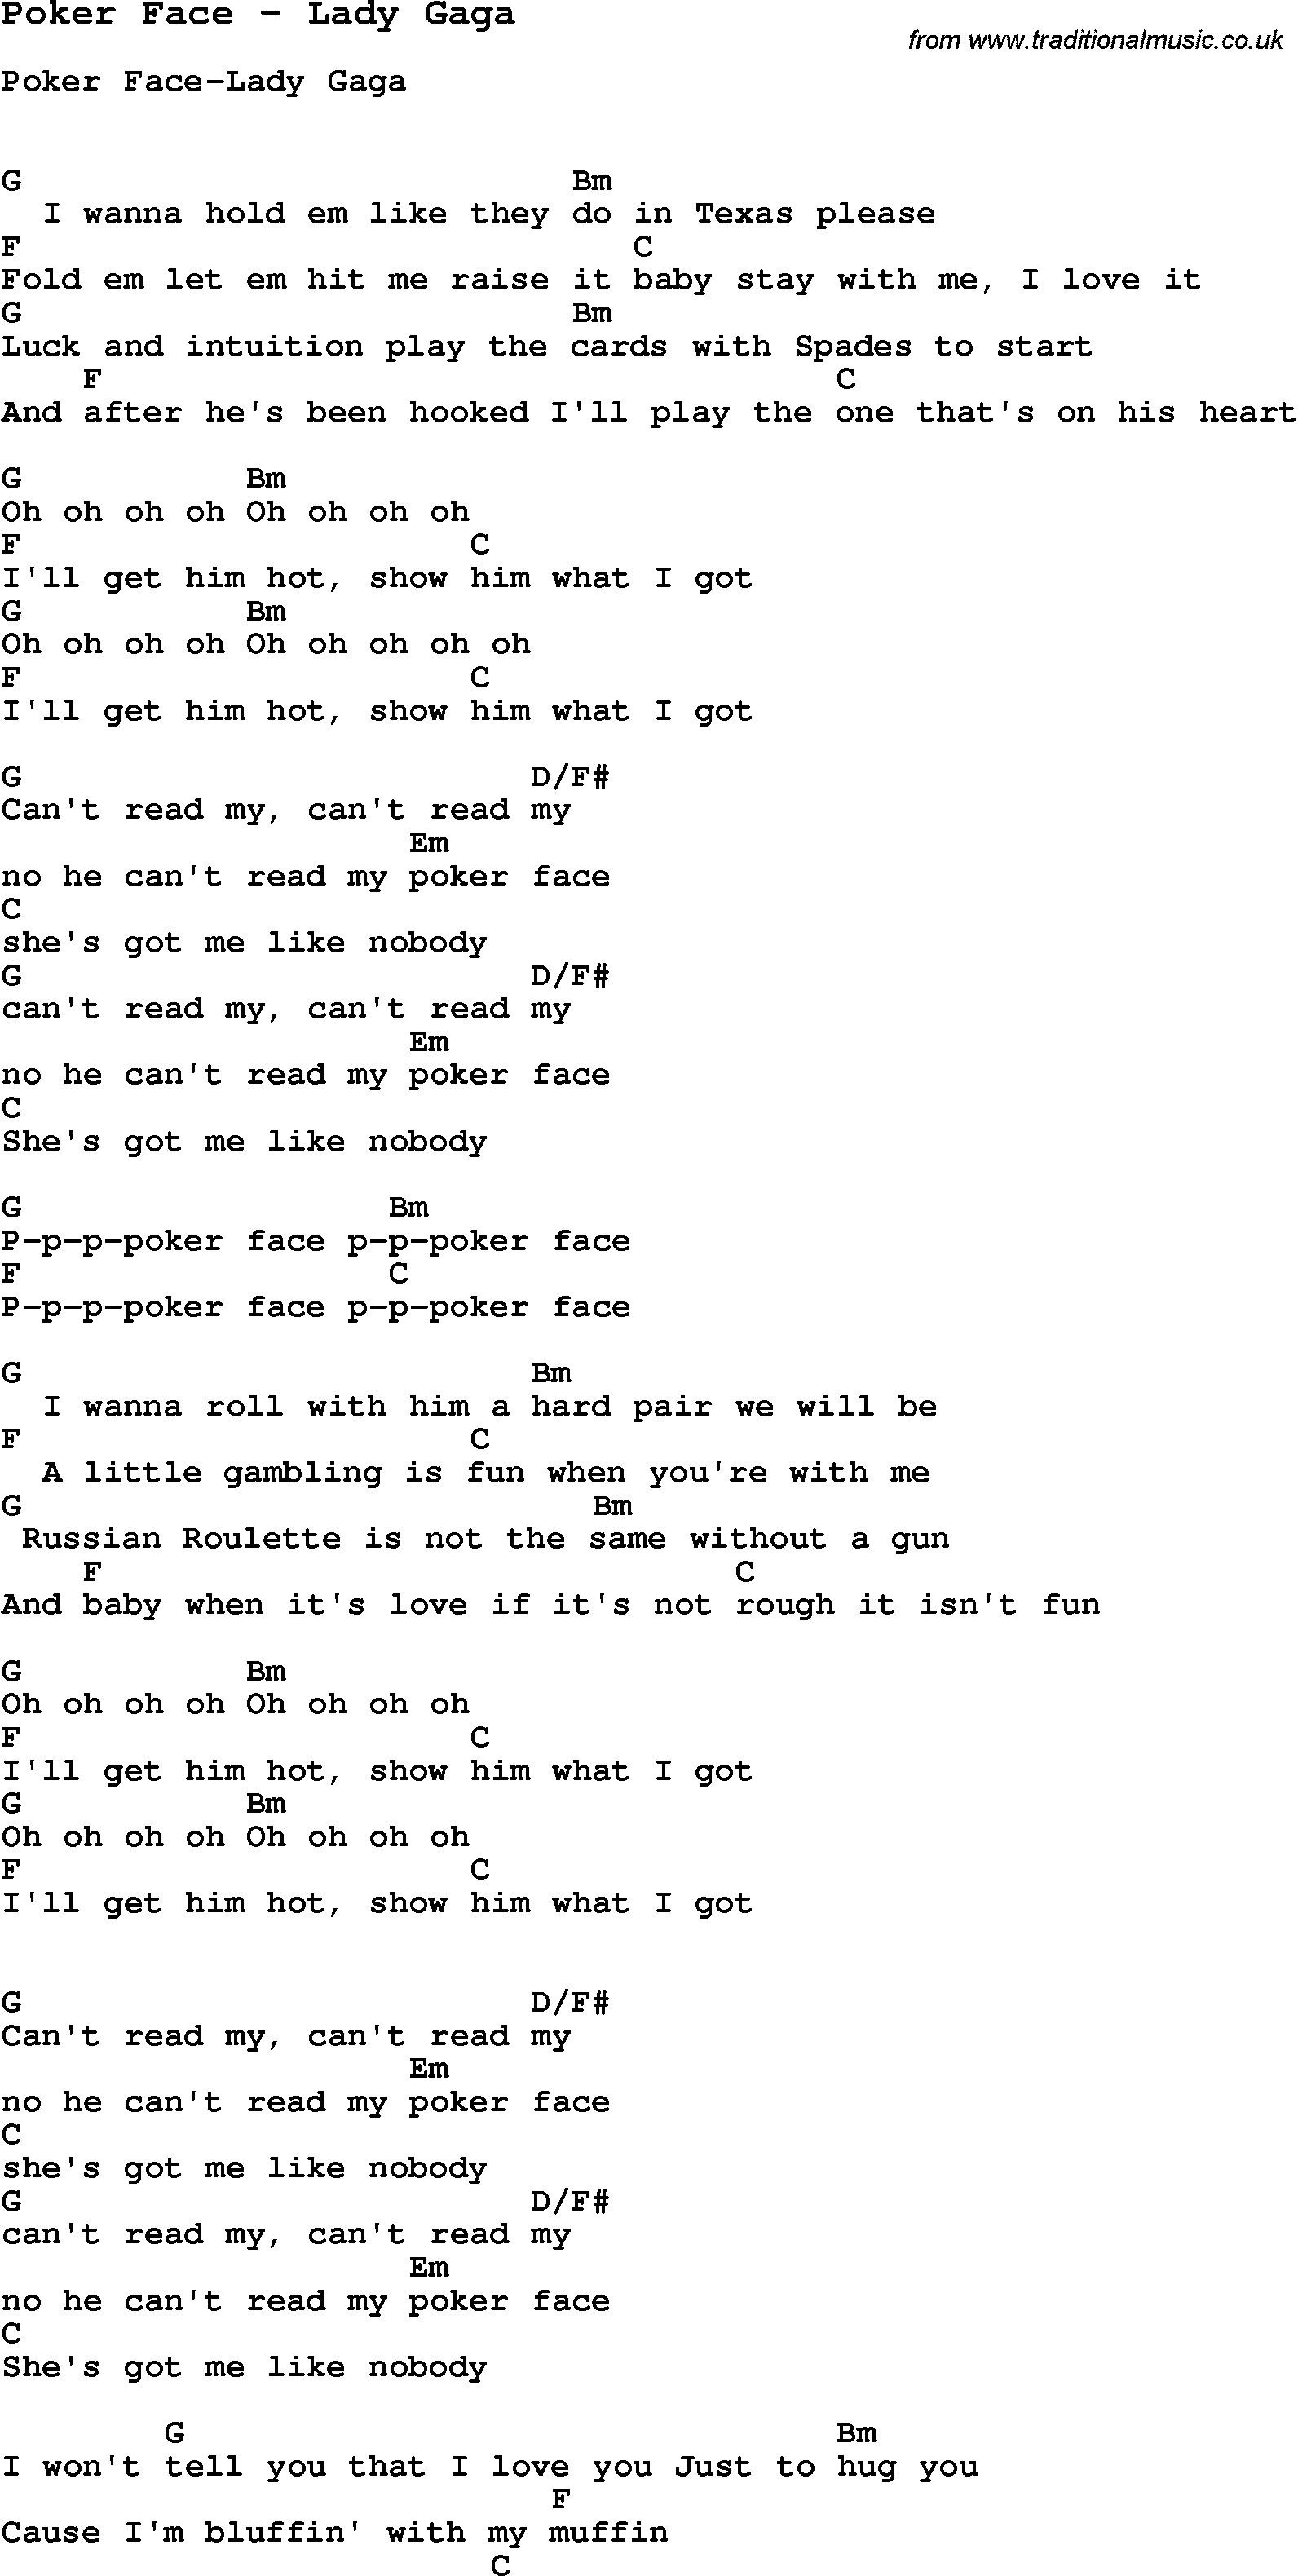 Song Poker Face by Lady Gaga, song lyric for vocal performance plus accompaniment chords for ...